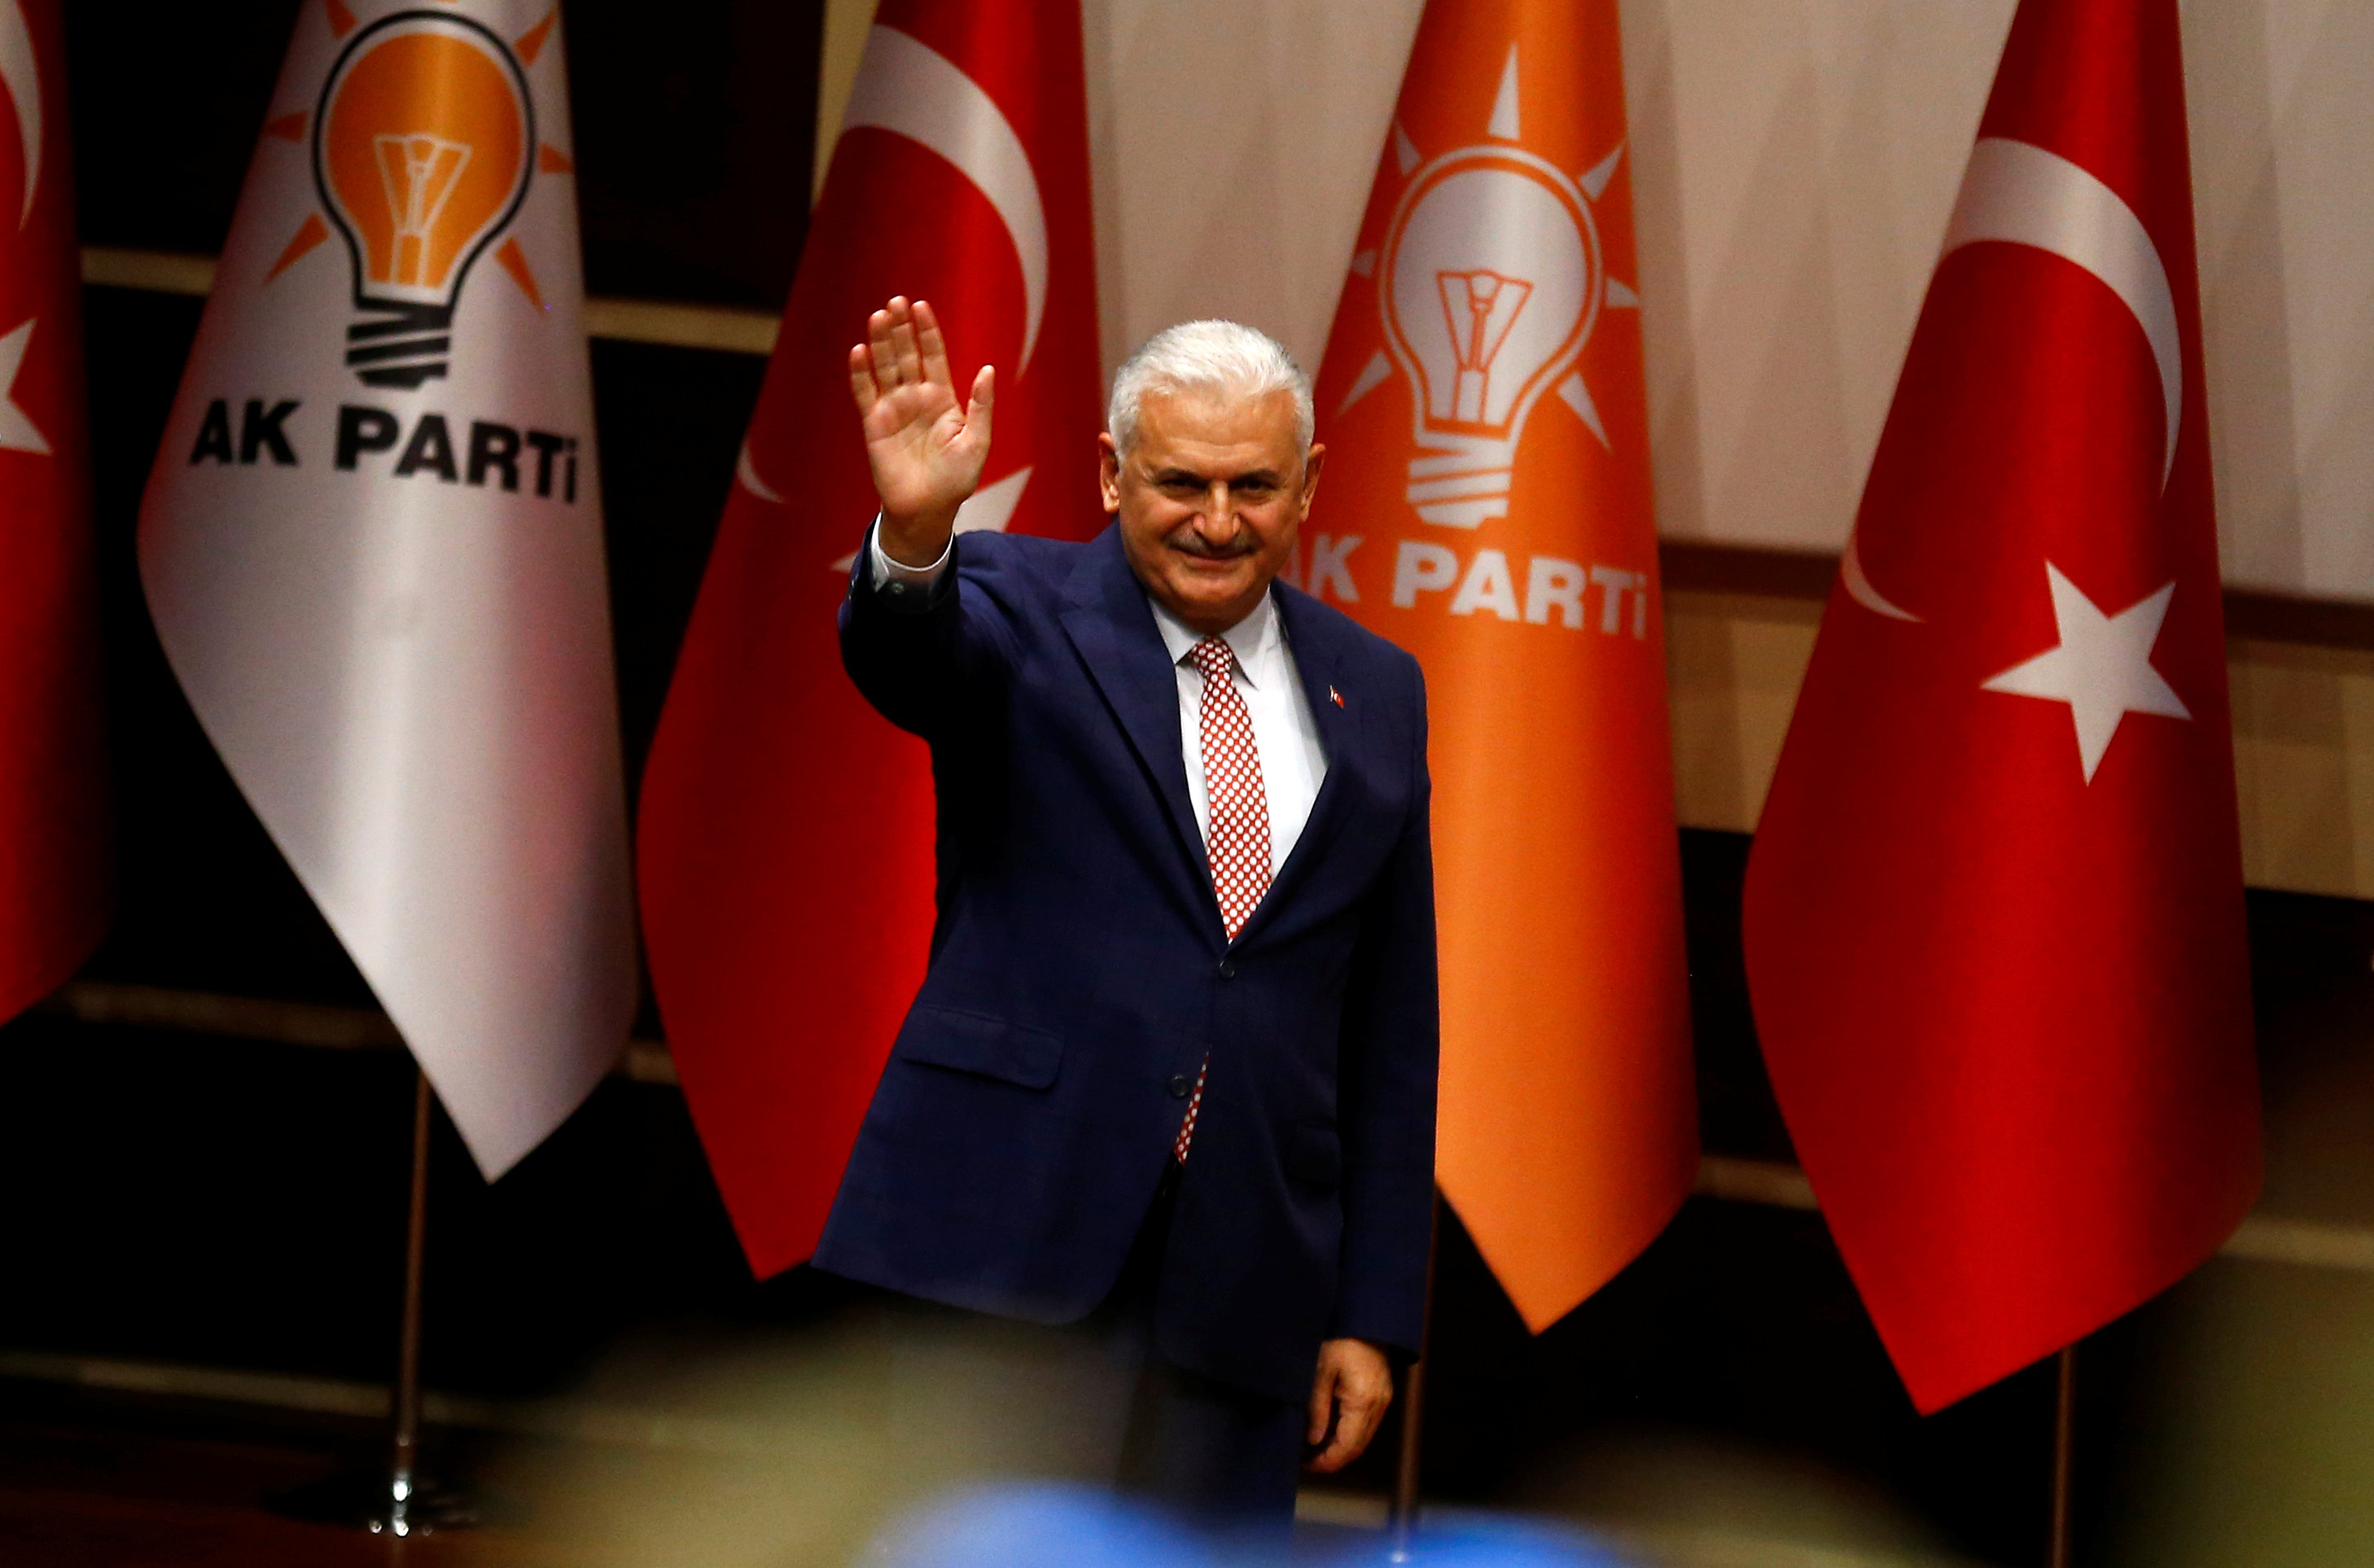 Turkey's likely next prime minister and incoming leader of the ruling AK Party Binali Yildirim greets party members during a meeting in Ankara